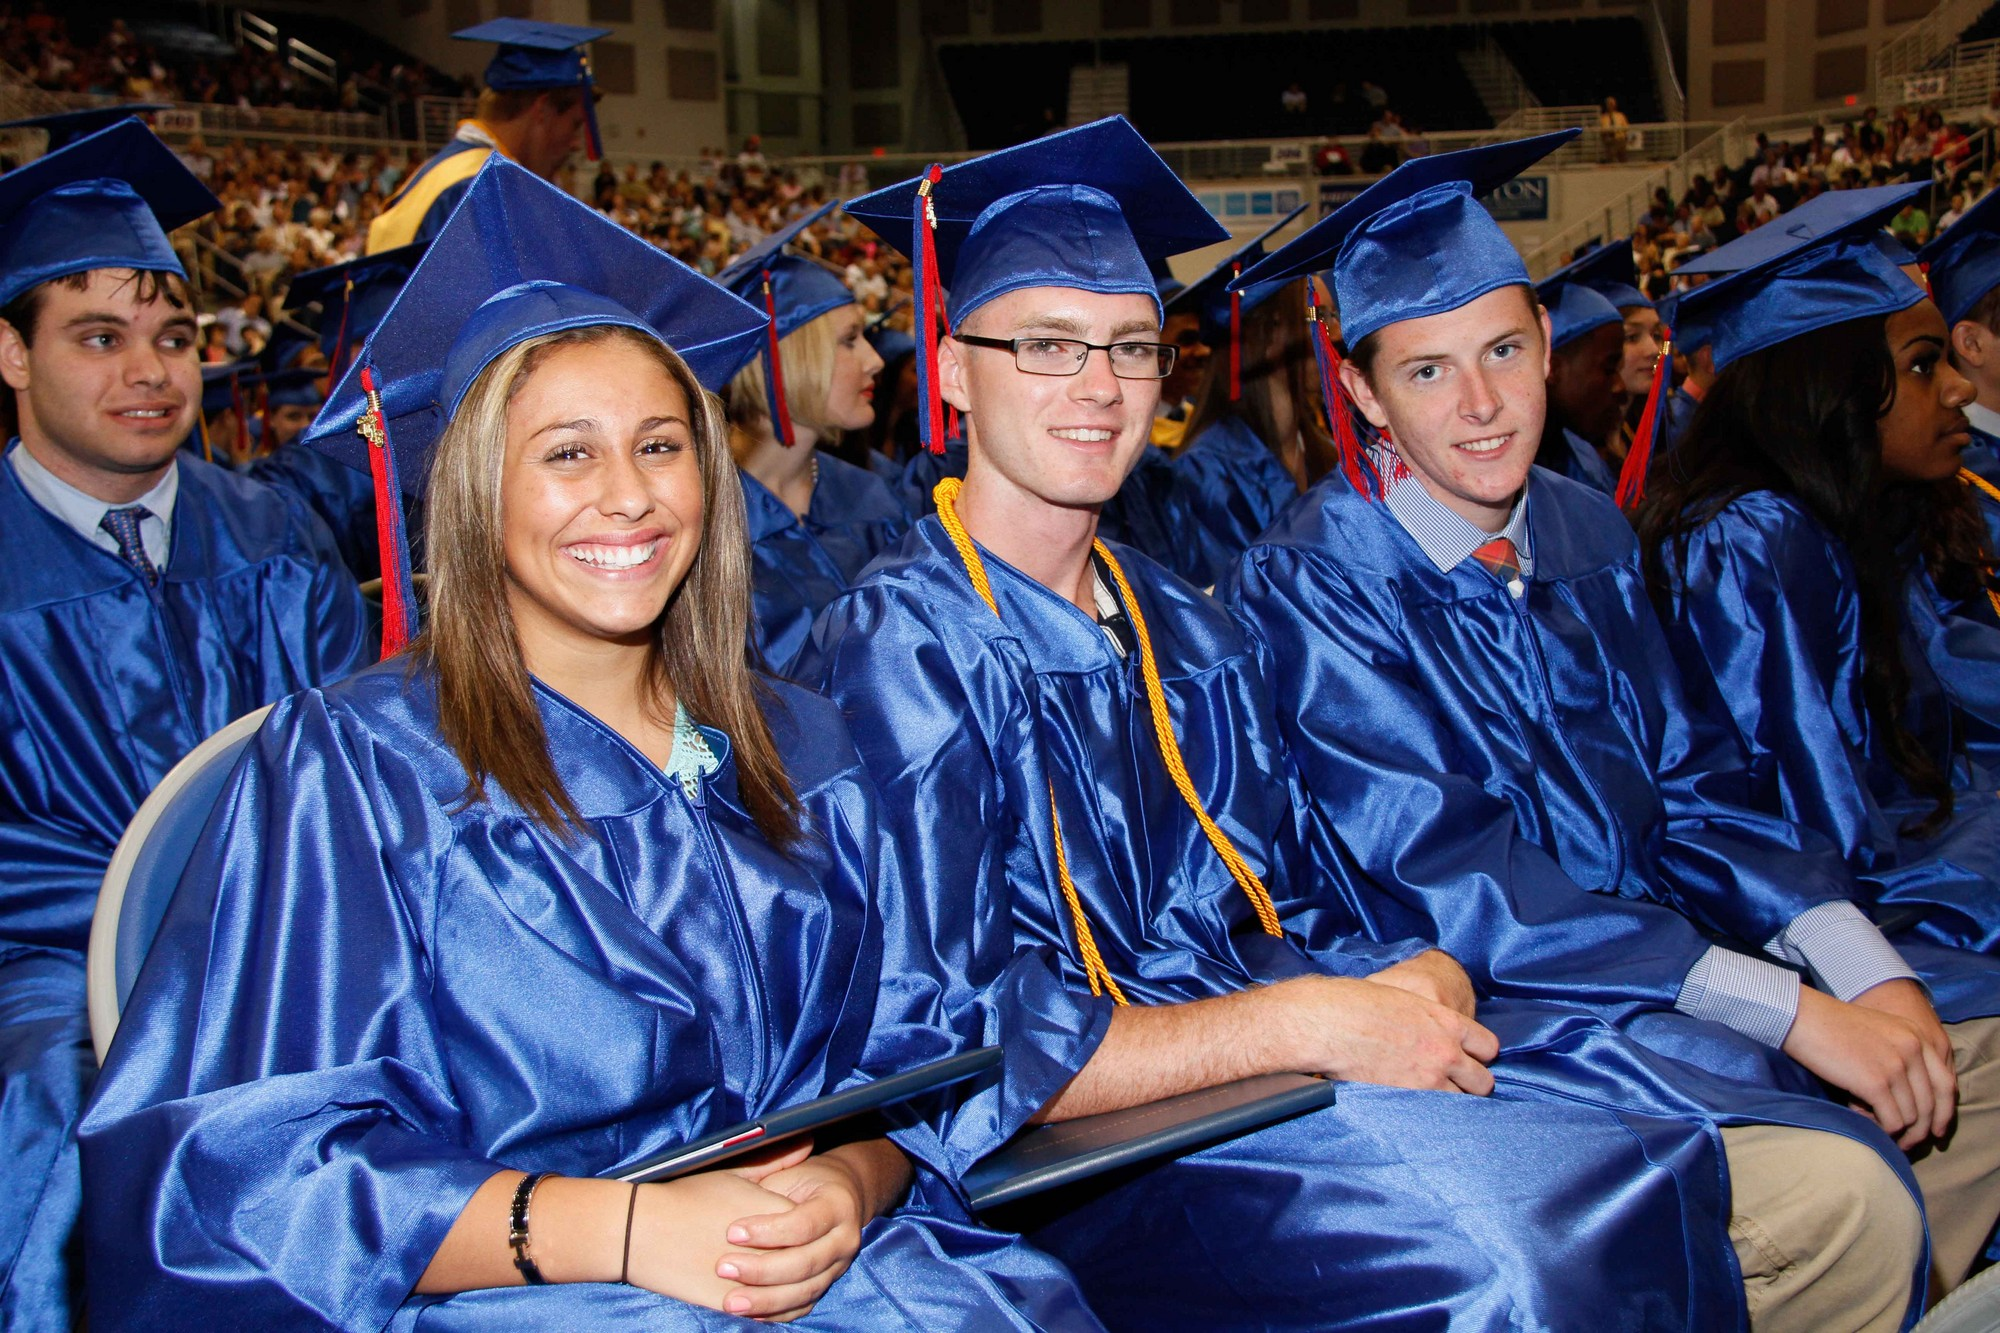 Tina Barricelli, Justin Barrero and Liam Baker were all smiles after receiving their diplomas.